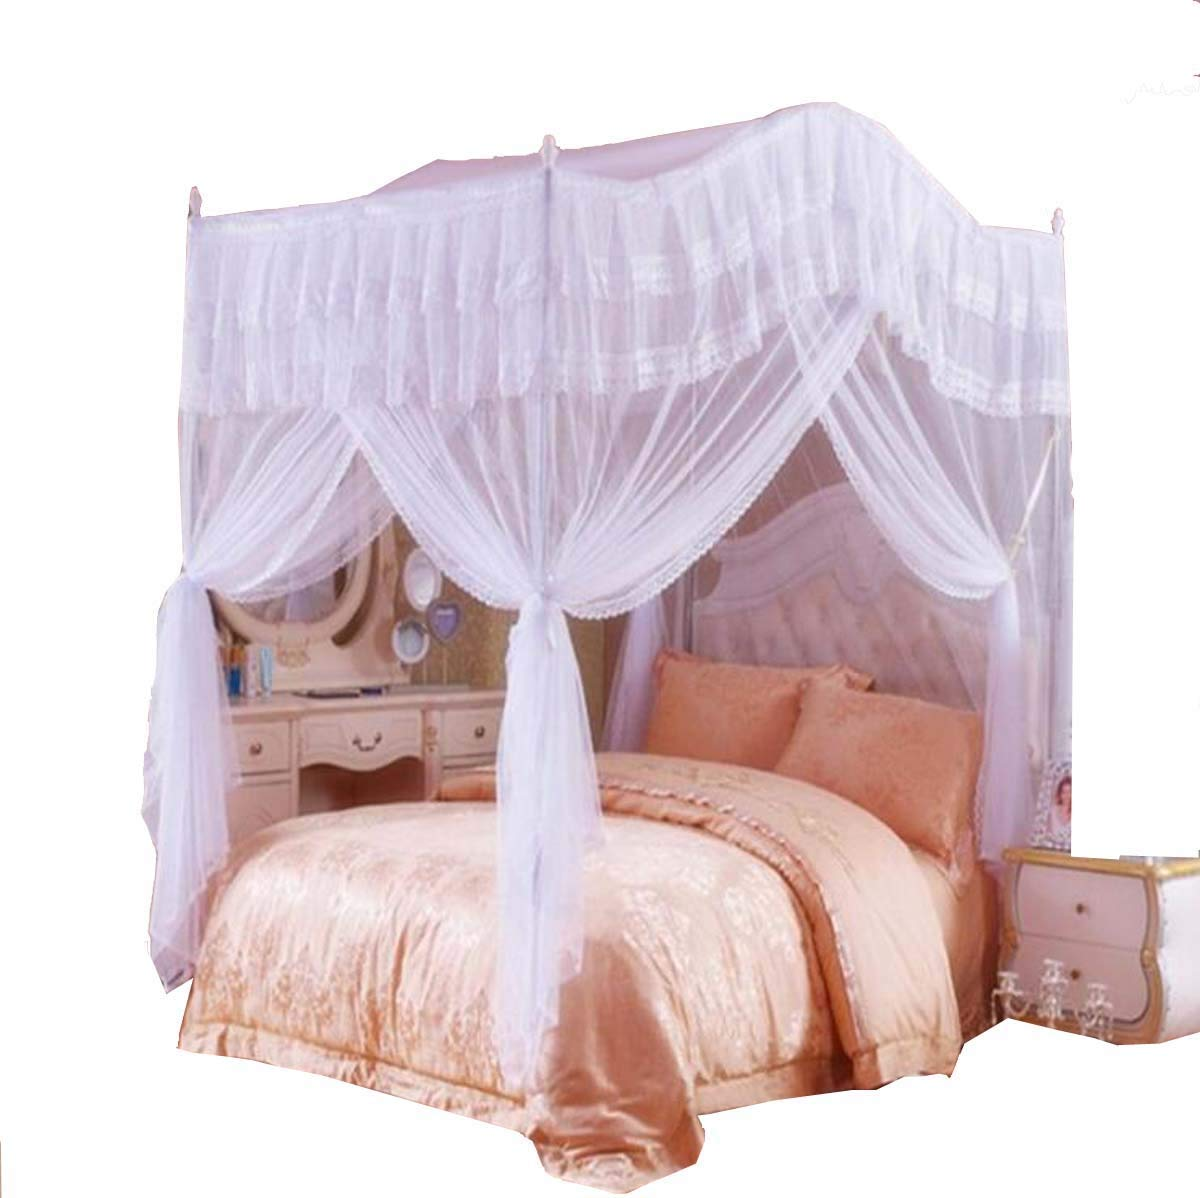 Mengersi Arched 4 Corners Post Bed Curtain Canopy Net Square Princess Fly Screen